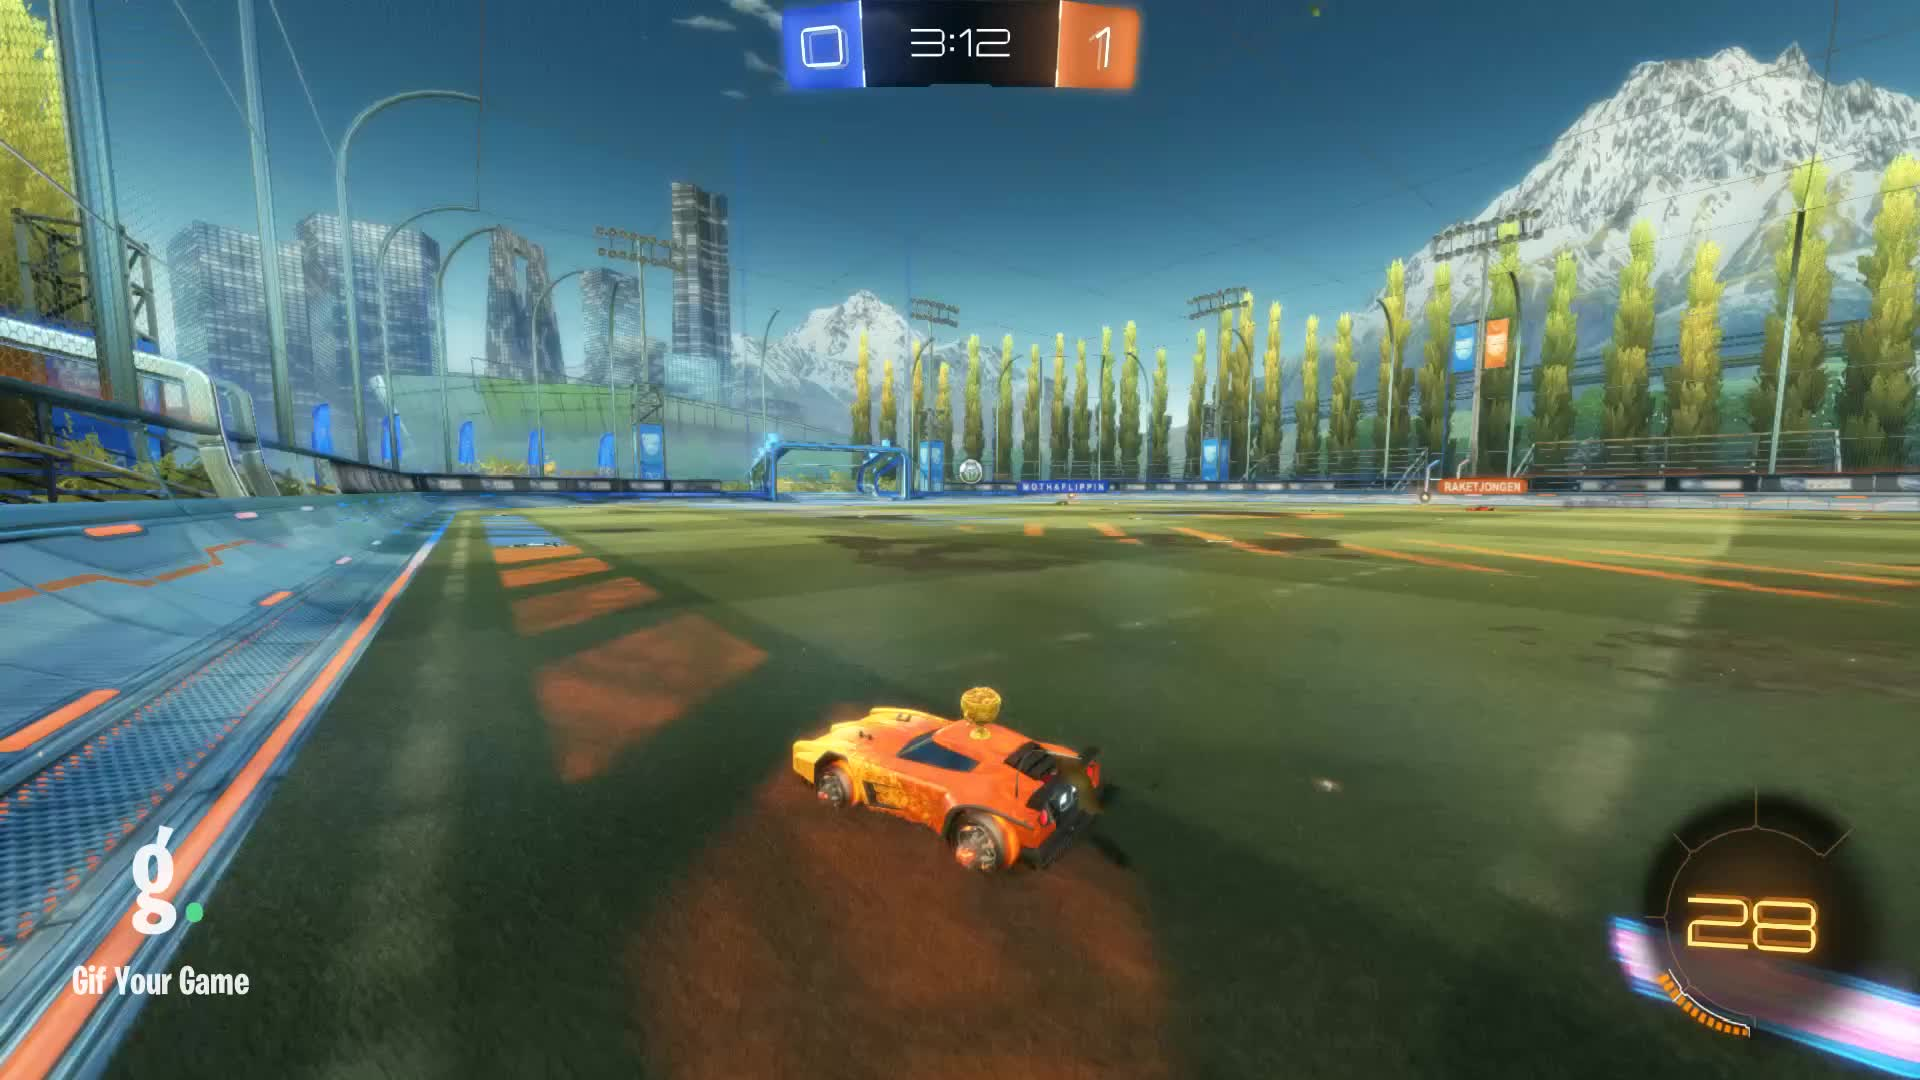 Billy PepeHands, Gif Your Game, GifYourGame, Goal, Rocket League, RocketLeague, Goal 2: Billy PepeHands GIFs